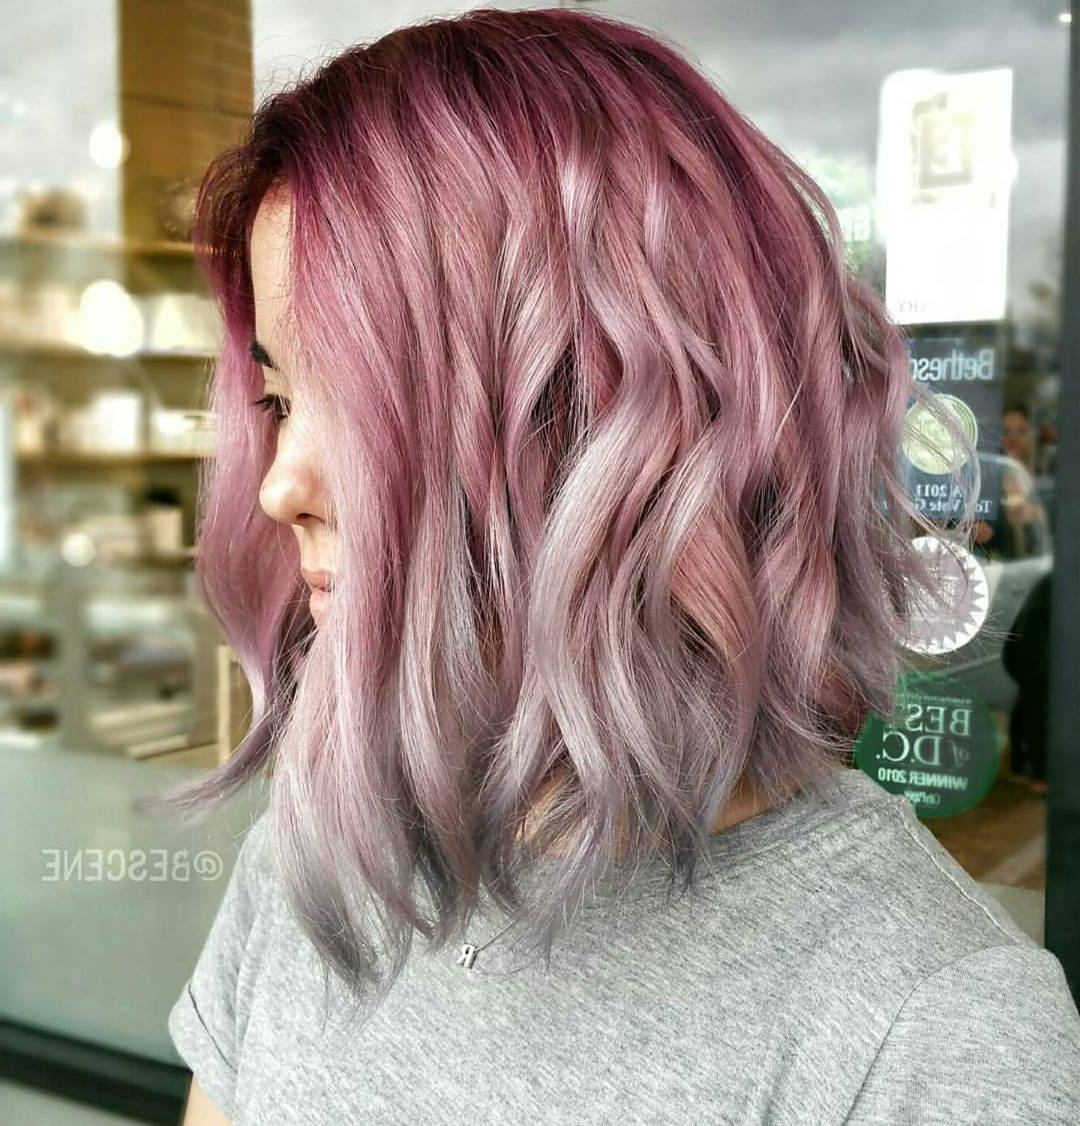 [%latest Medium Haircuts For Thick Wavy Hair Pertaining To 30 Edgy Medium Length Haircuts For Thick Hair [october, 2018]|30 Edgy Medium Length Haircuts For Thick Hair [october, 2018] Pertaining To 2018 Medium Haircuts For Thick Wavy Hair%] (View 15 of 20)